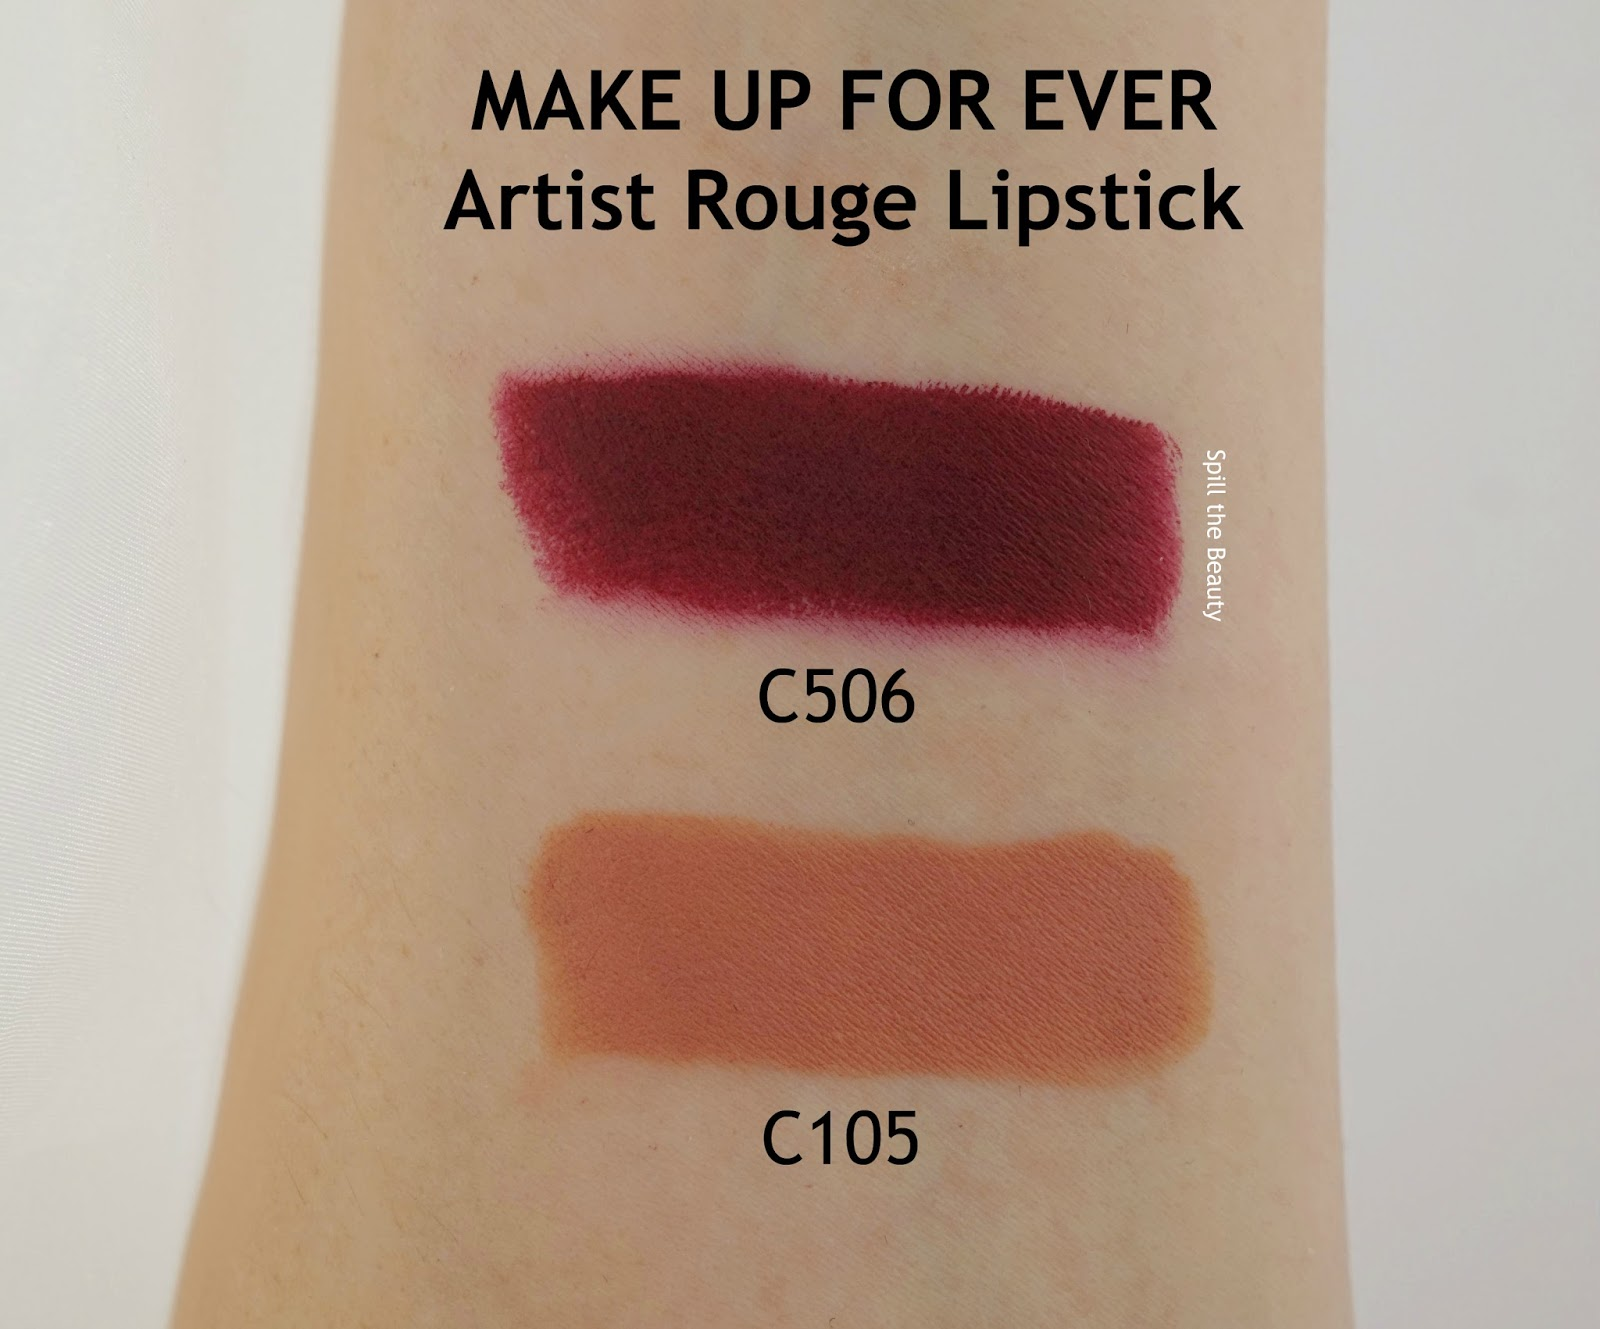 Artist Rouge 7 Lipstick Palette by Make Up For Ever #5